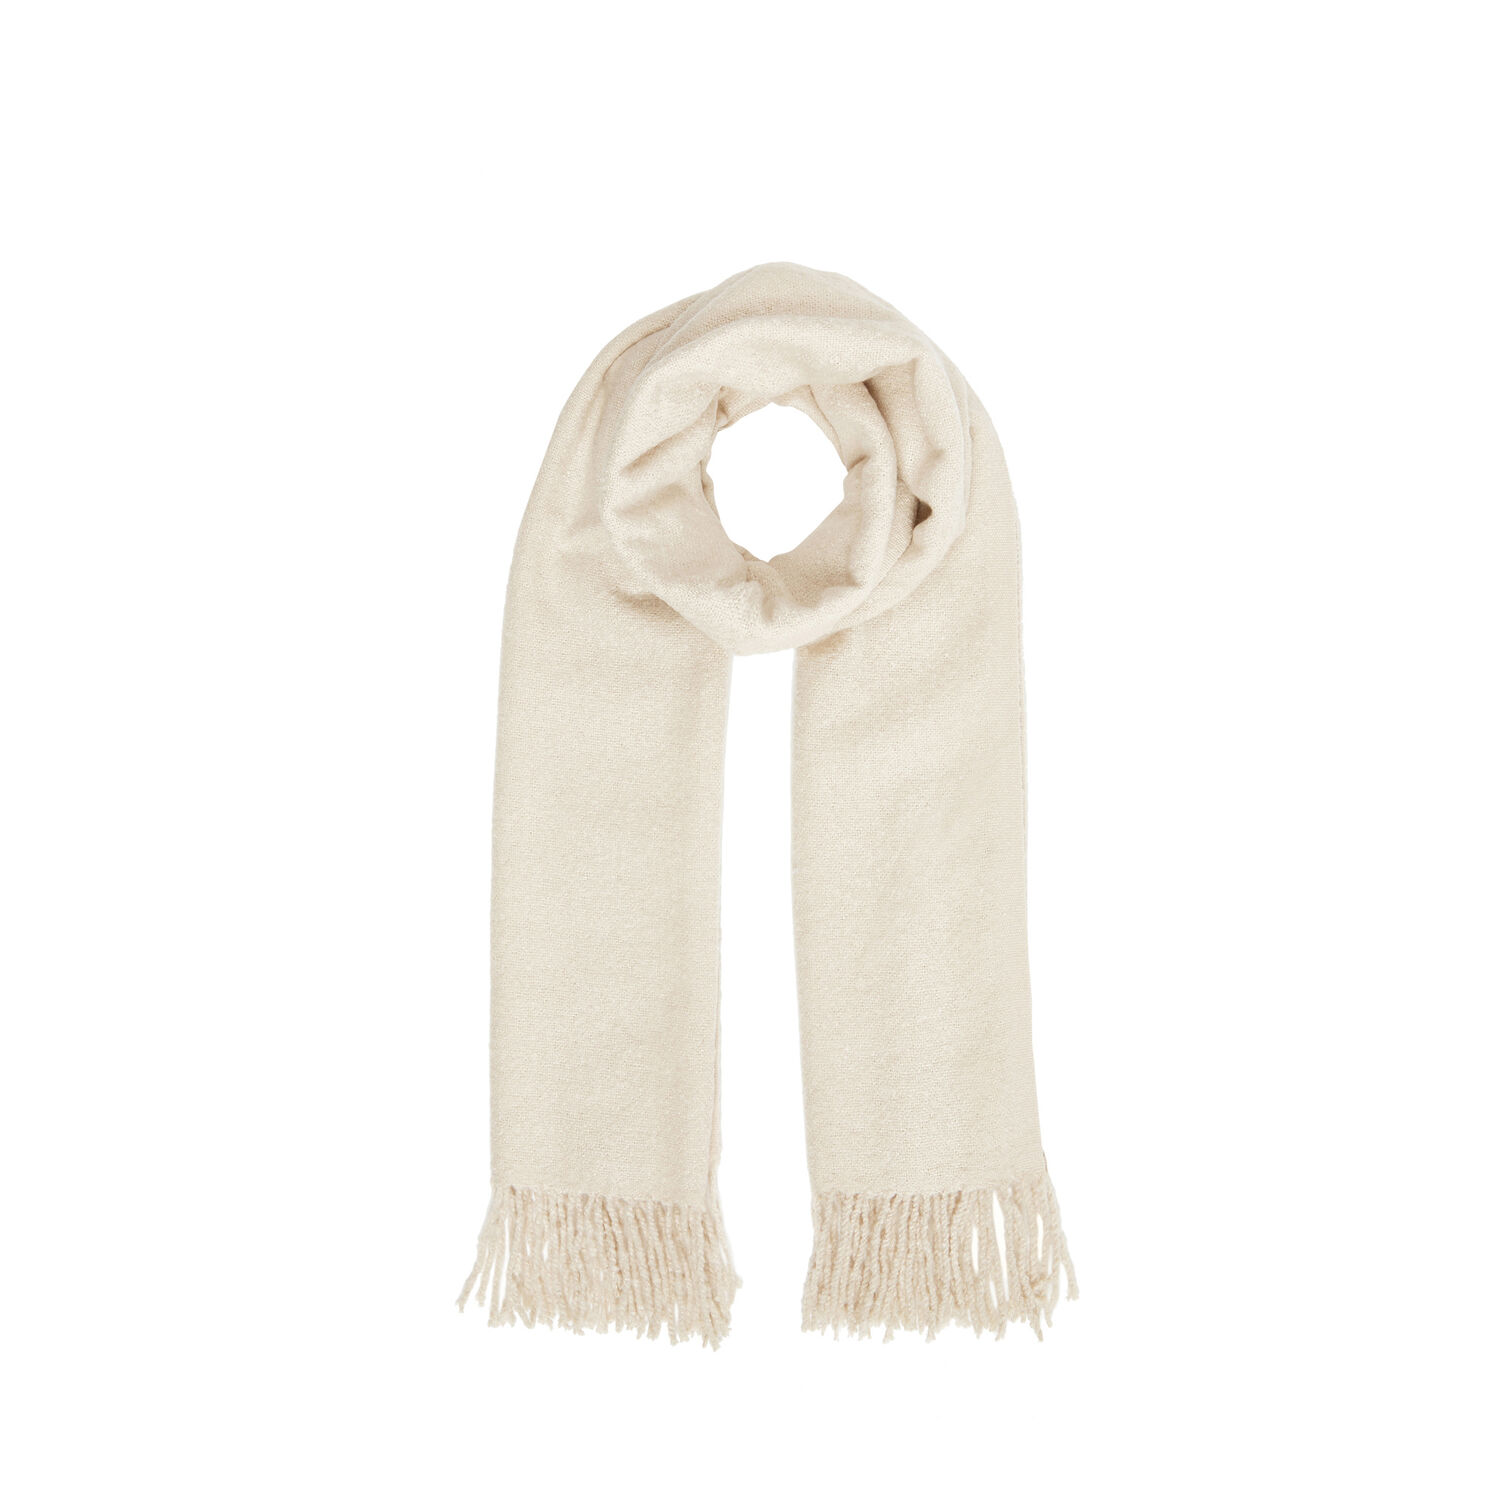 Warehouse, Boucle Scarf Cream 1